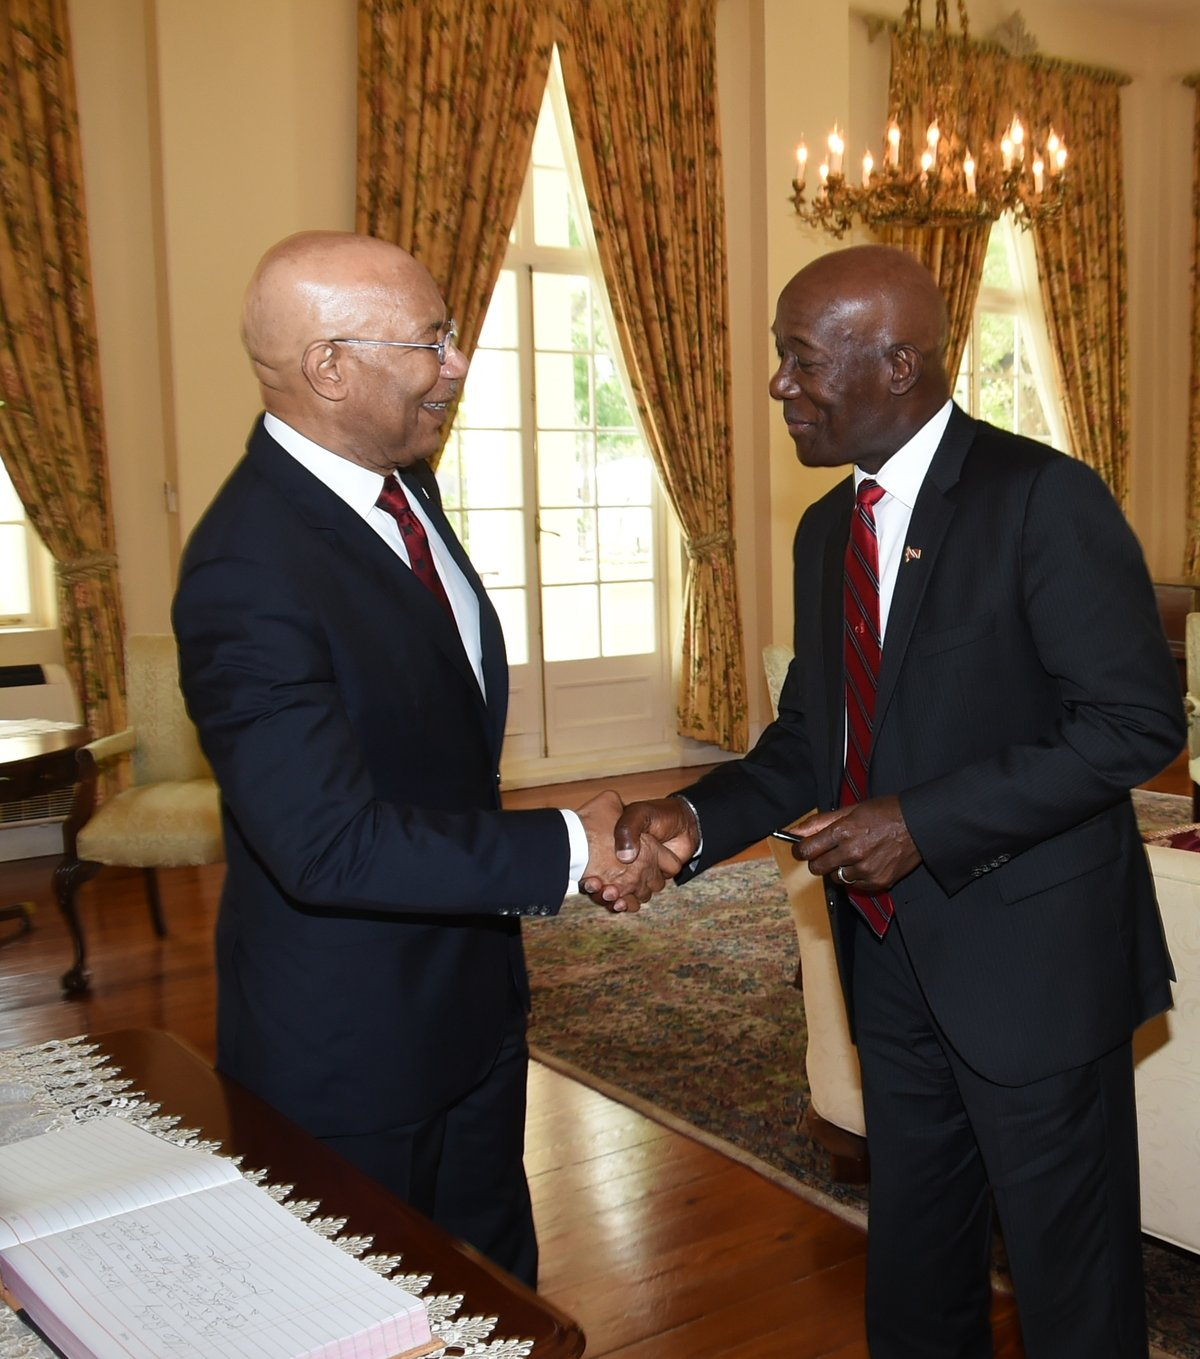 Prime Minister Dr. Keith Rowley is greeted by Jamaica's Governor General